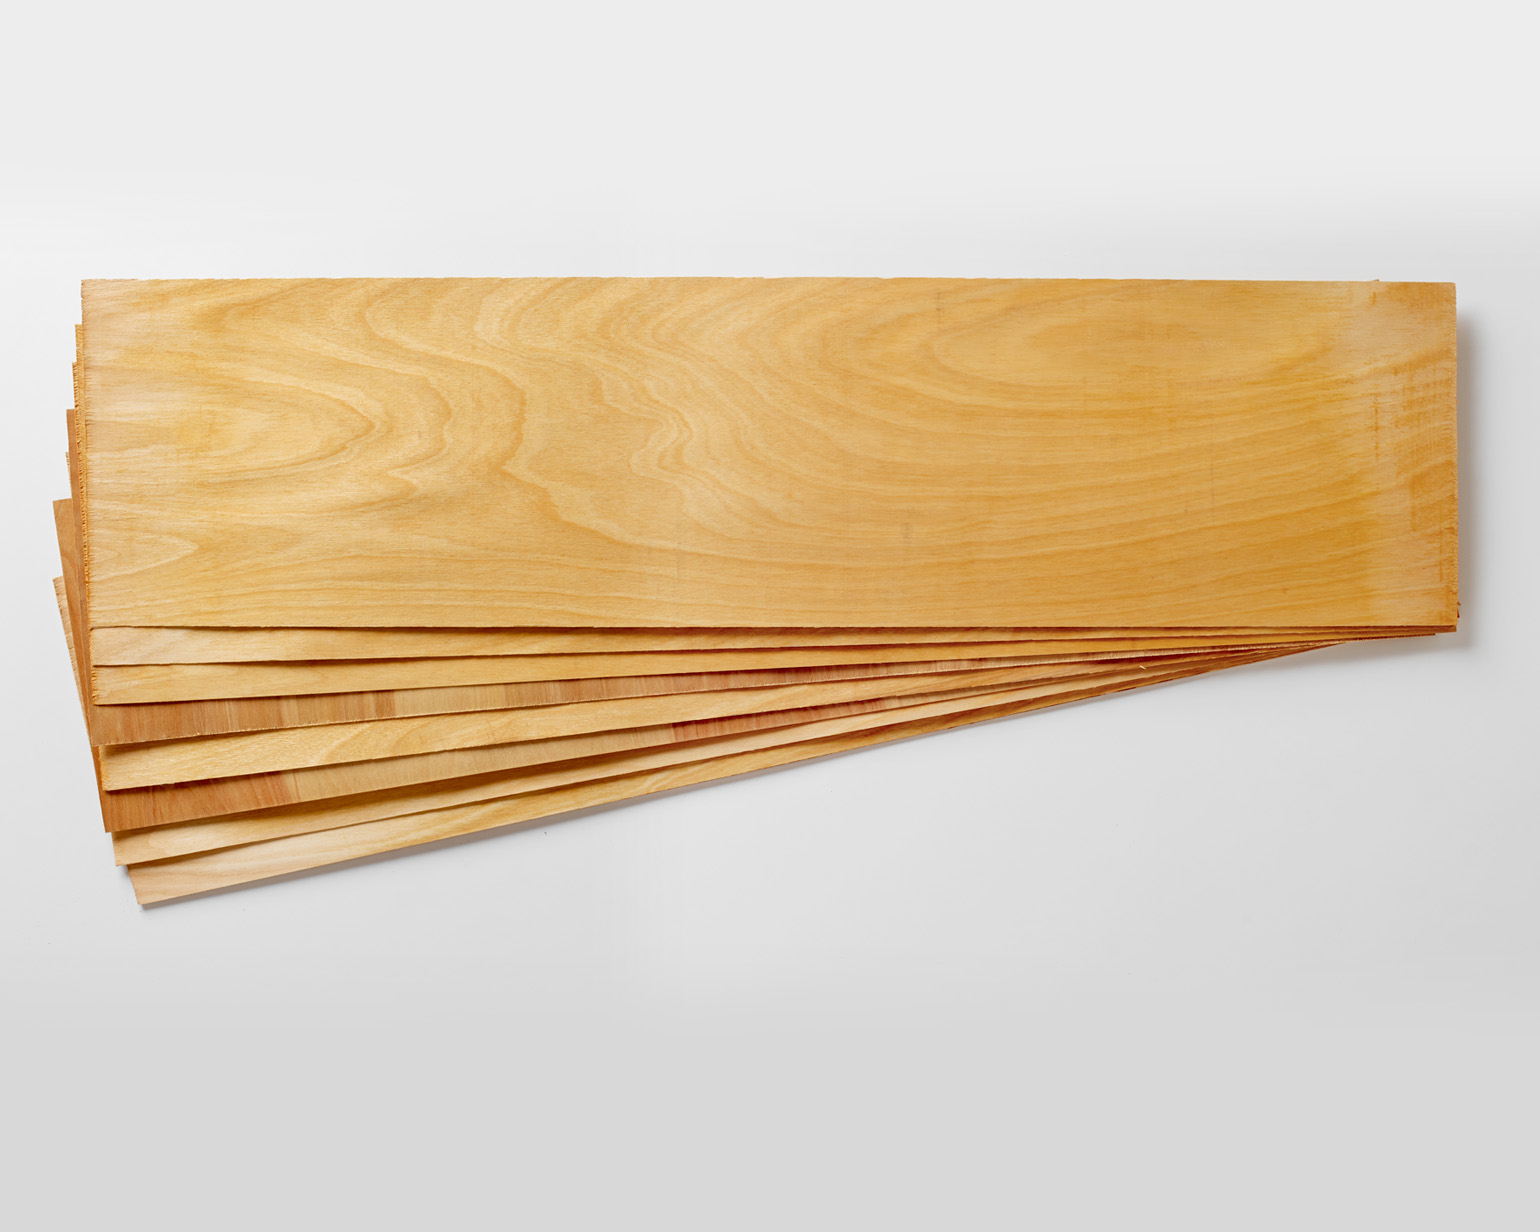 lbb08-birch-long-board-veneer-1540.jpg